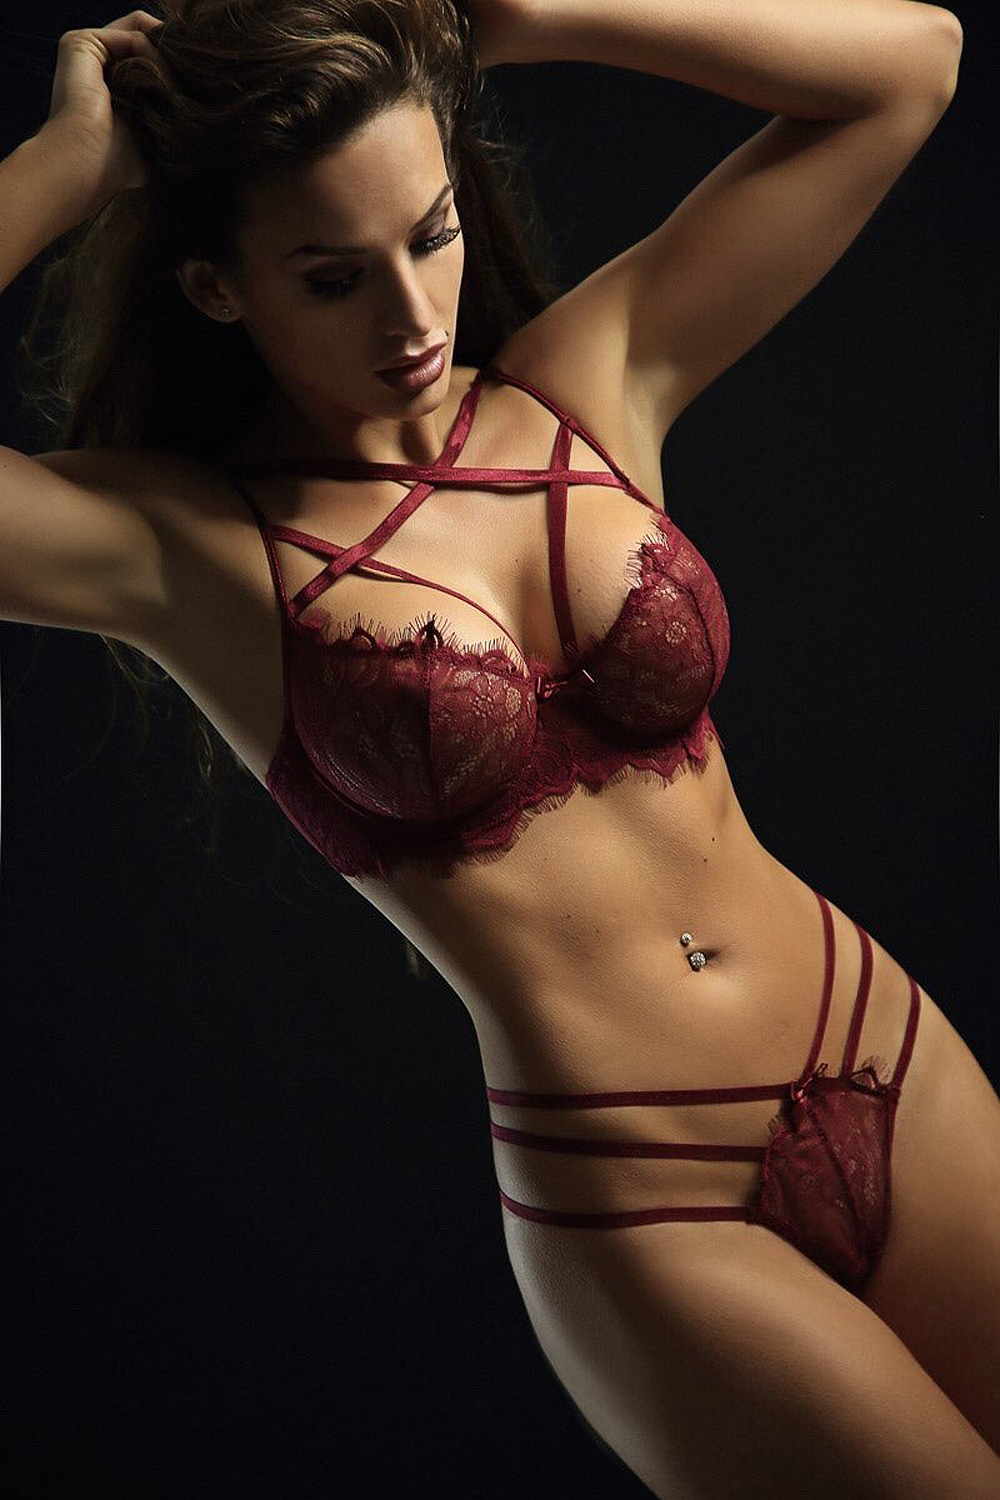 #Ali Drew #Ali Drew#perfect body#beautiful lingerie#beautiful models#stunning sexy#stunning cleavage